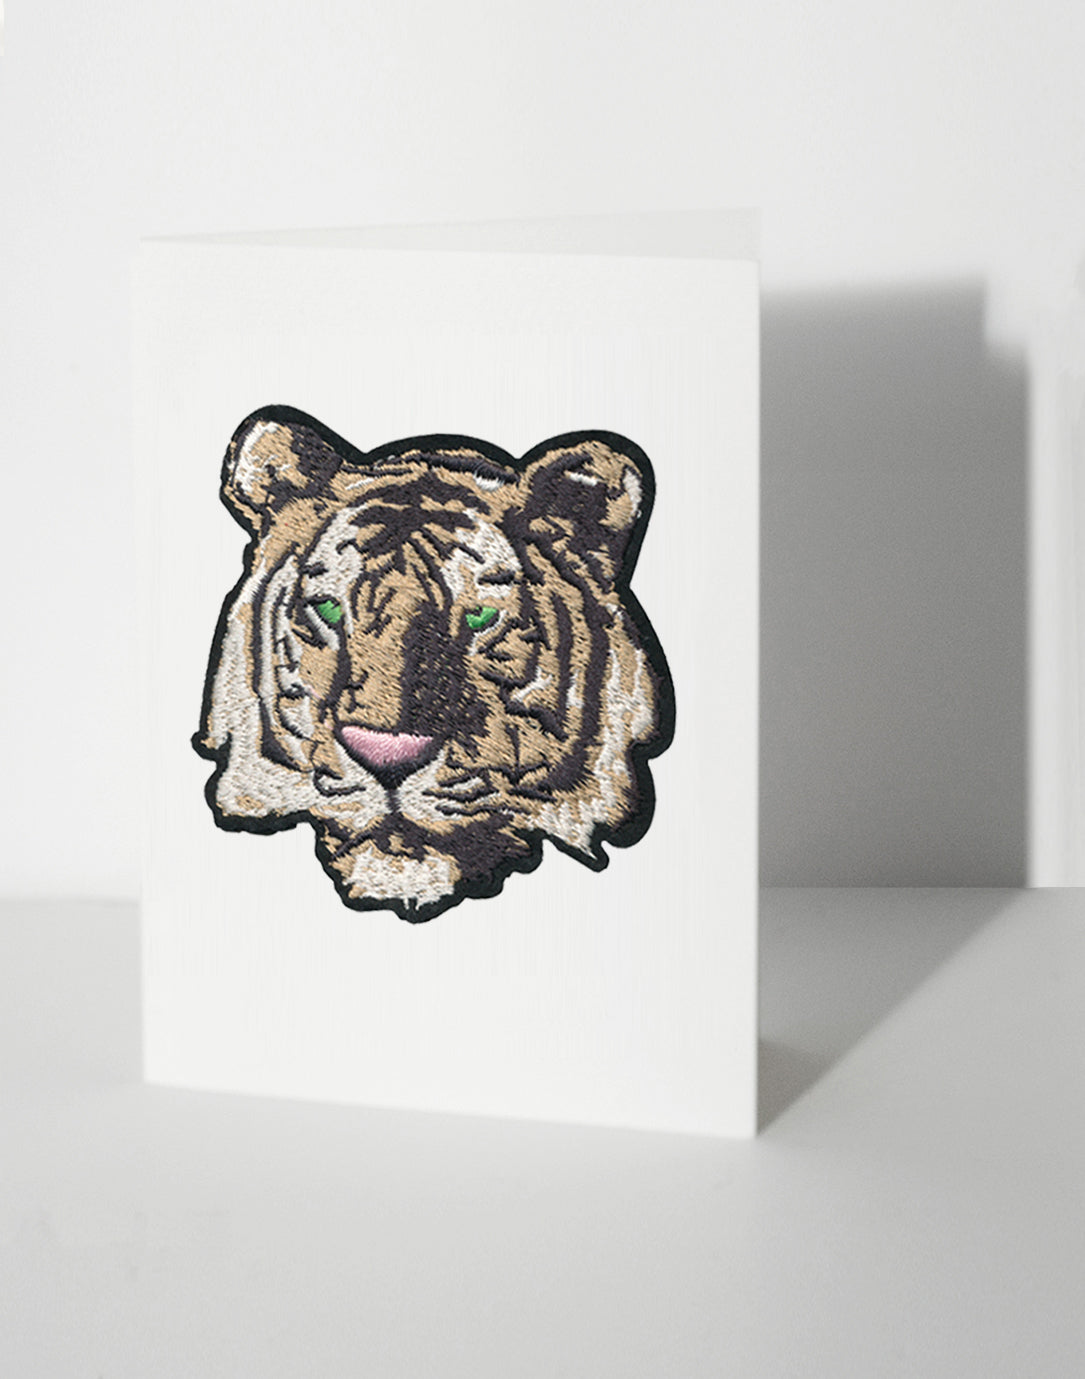 DANDY TIGER PATCH CARD - Dandy Star